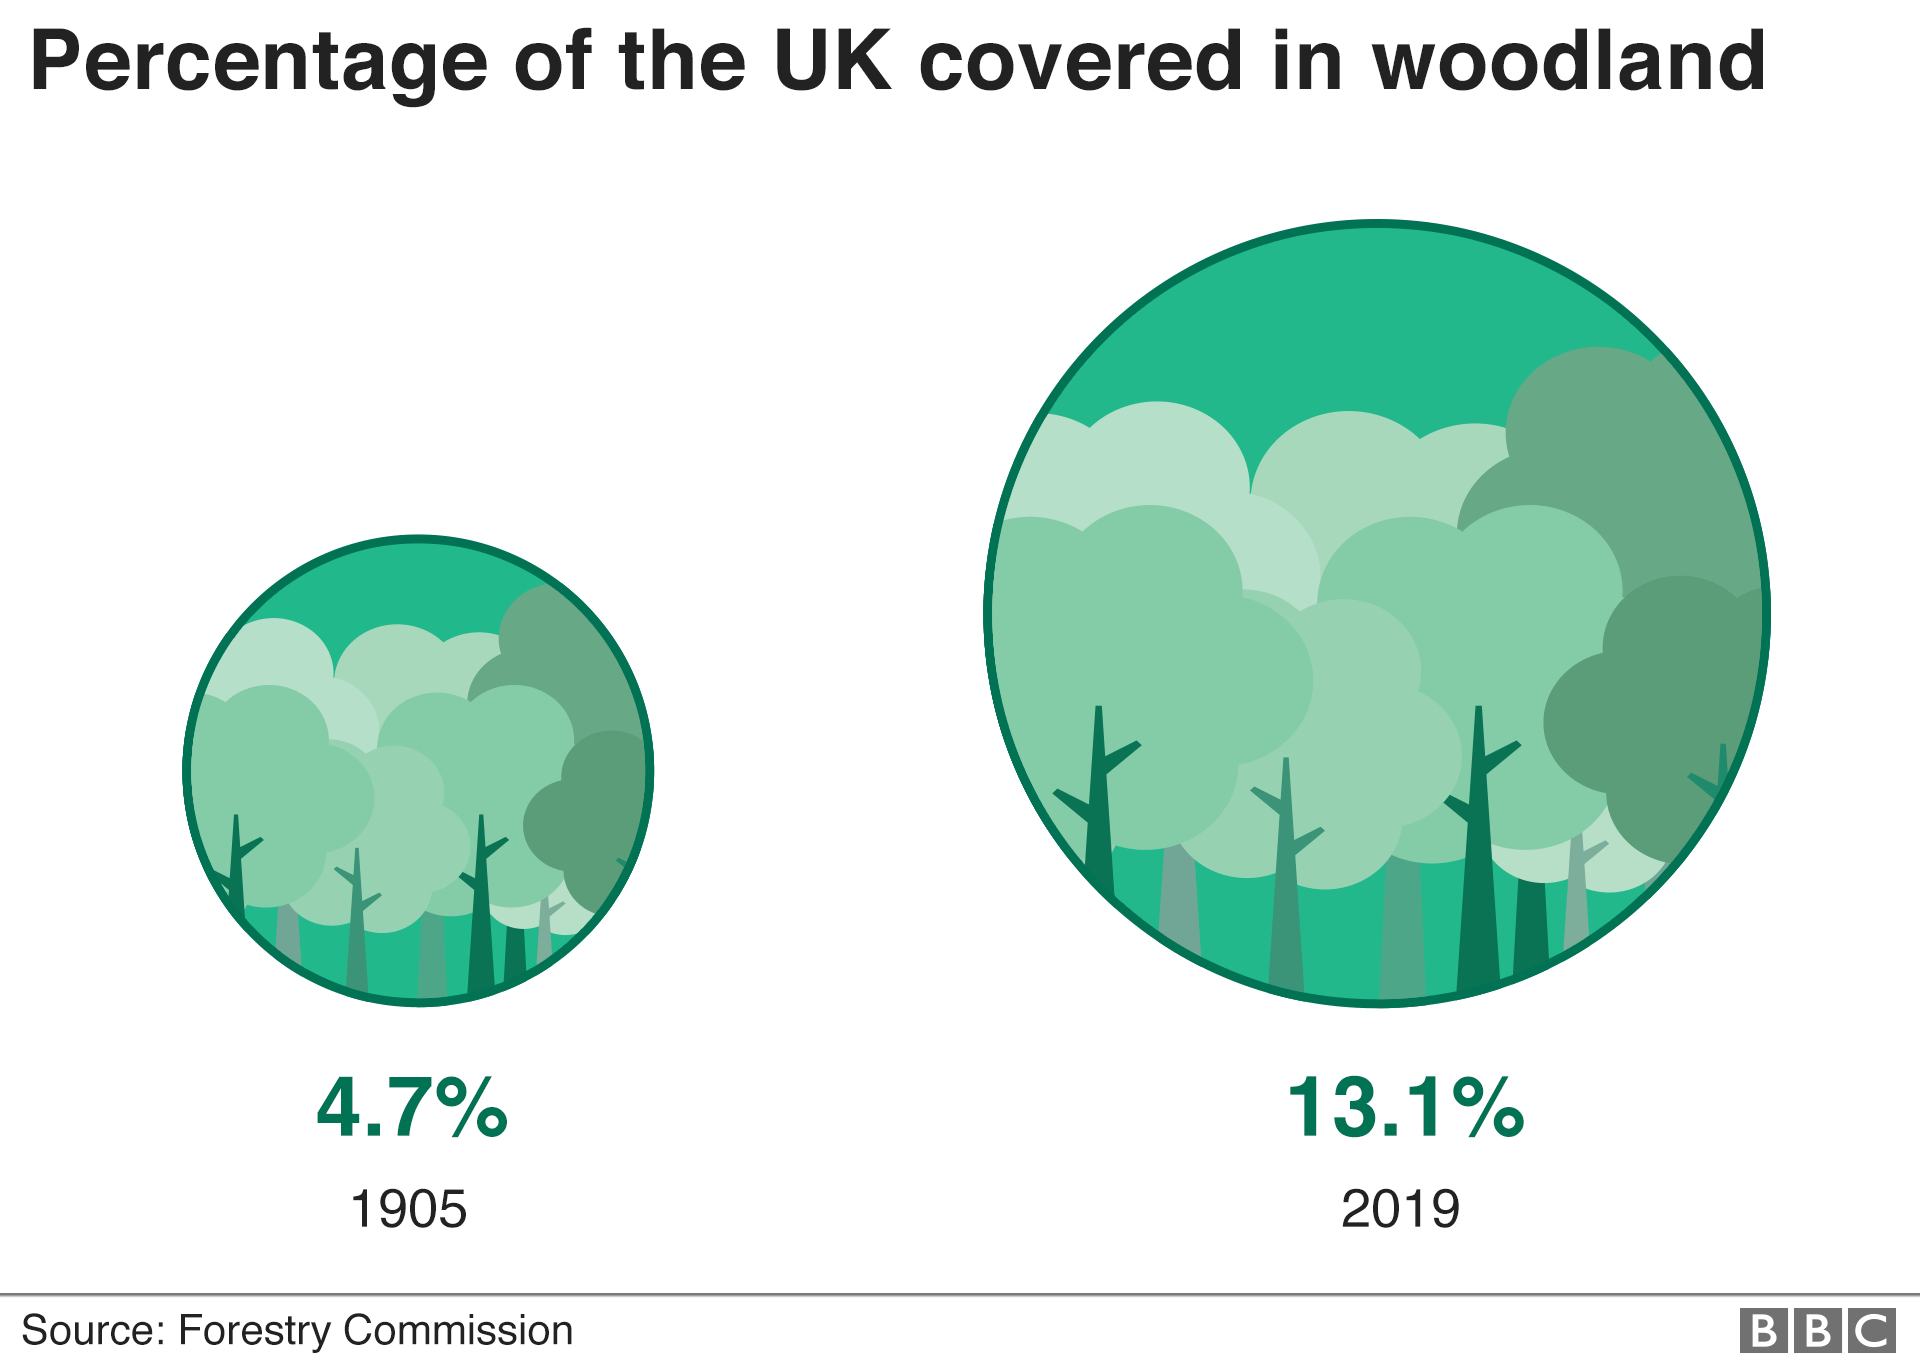 Charts showing percentage of the UK covered in woodland